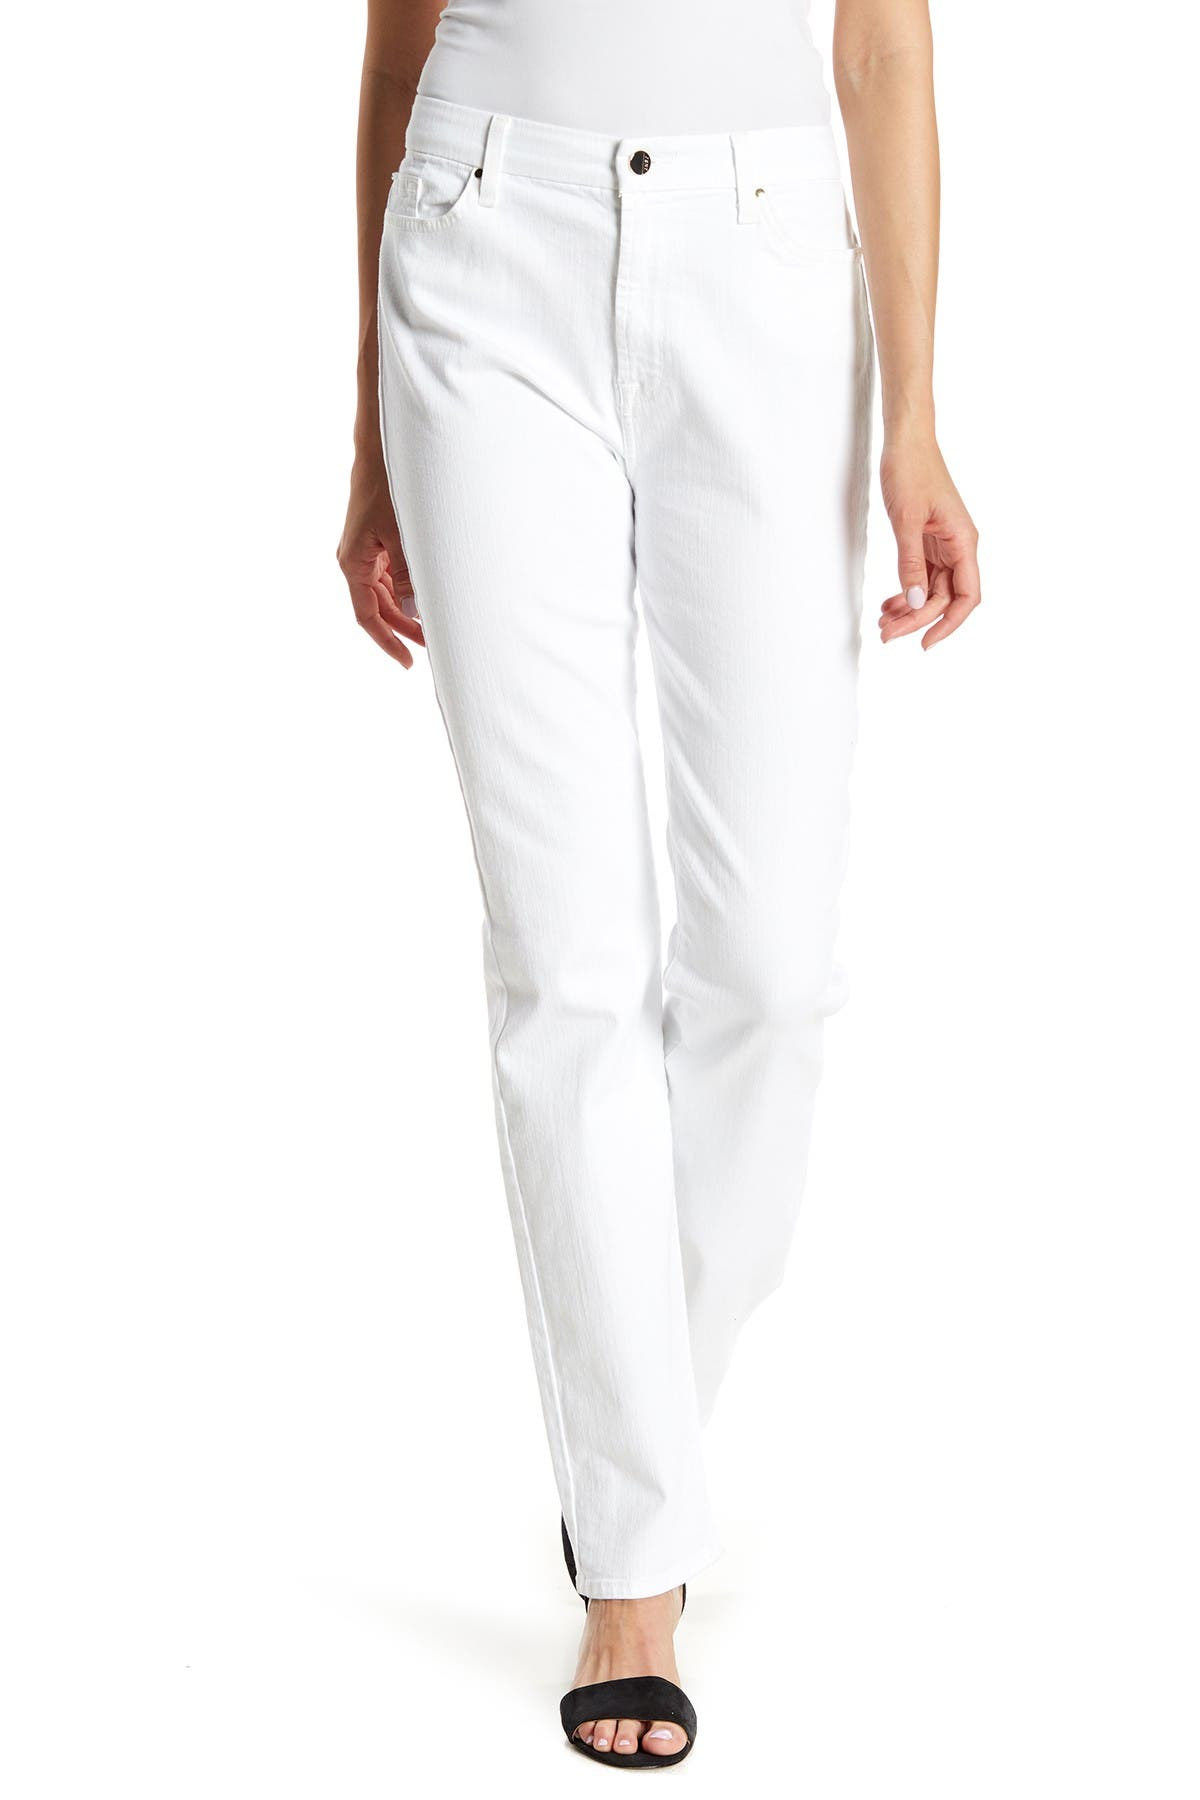 Image of Jen7 by 7 For All Mankind Slim Straight Jeans